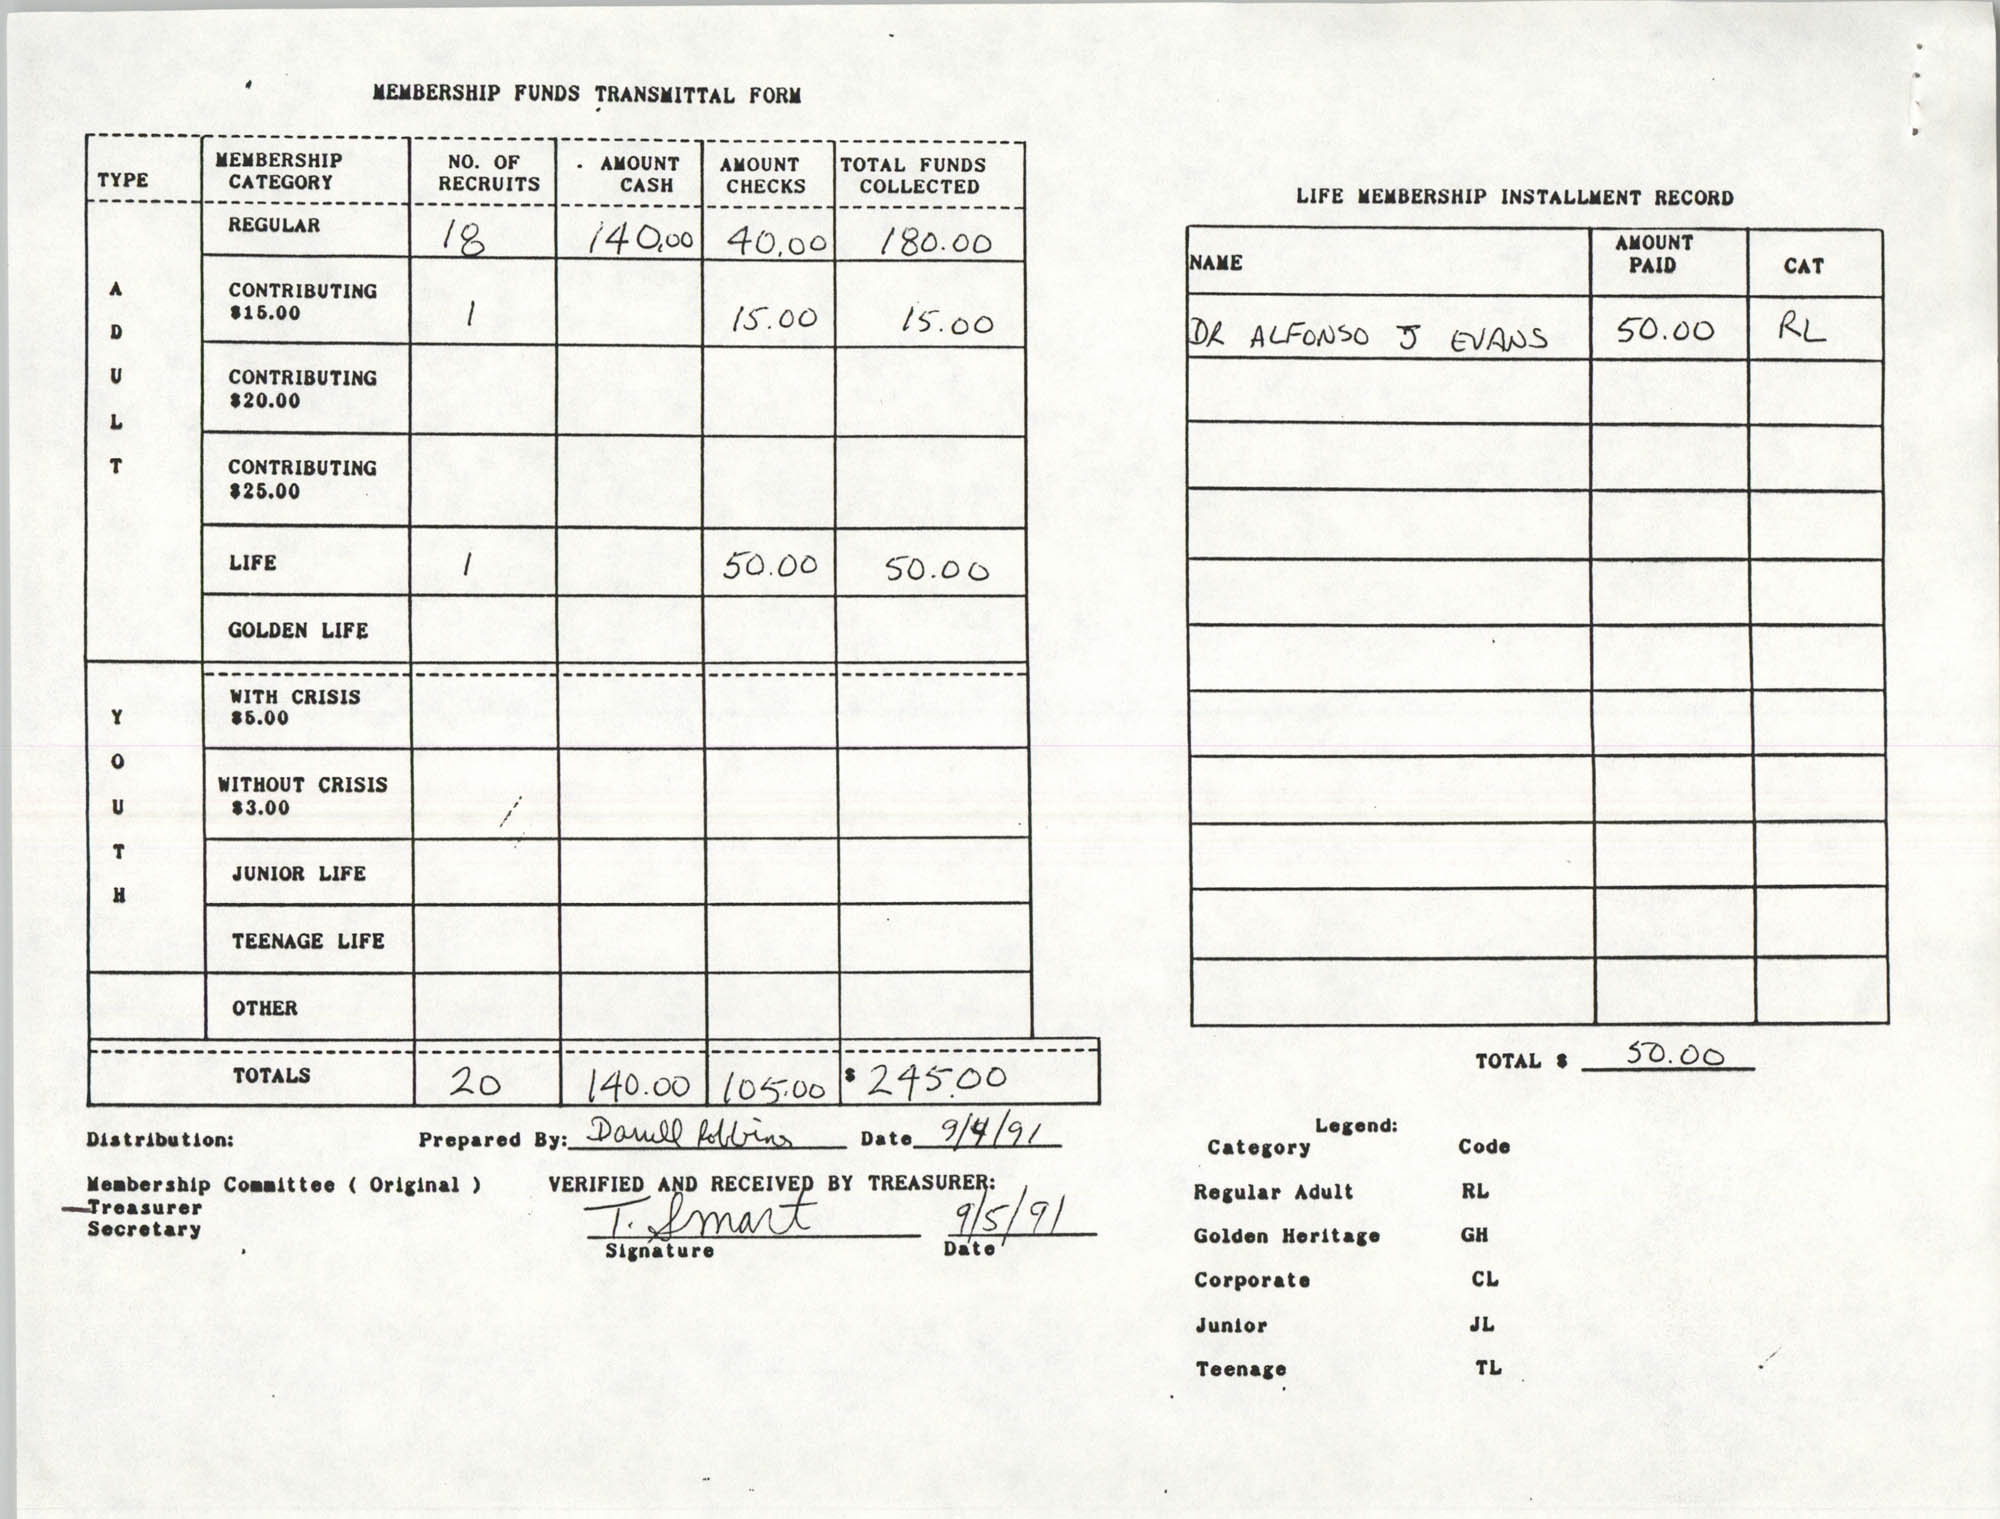 Charleston Branch of the NAACP Funds Transmittal Forms, September 1991, Page 11